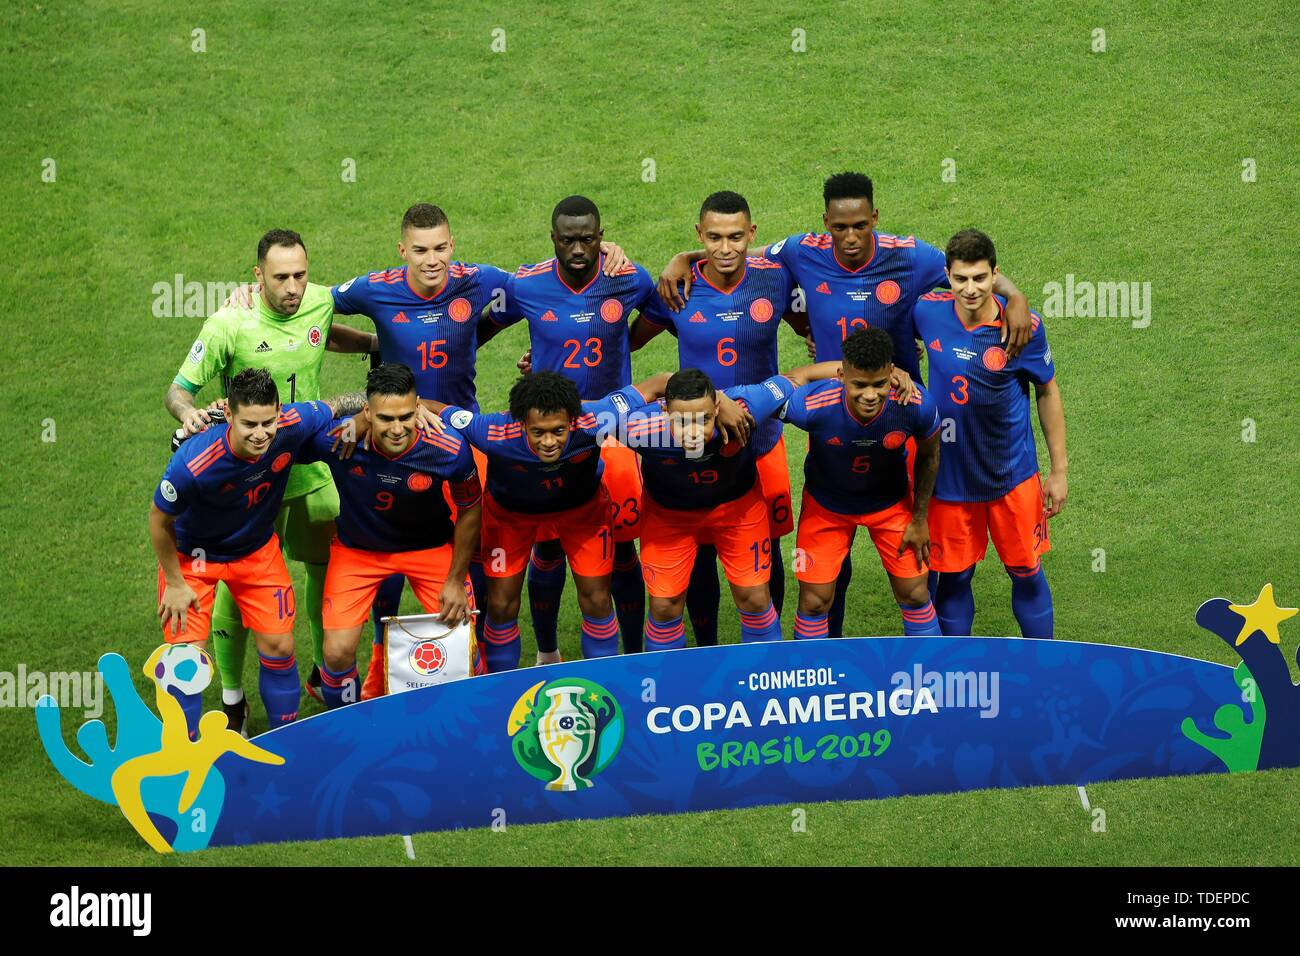 Salvador, Brazil. 15th June, 2019. Colombian players pose before the Copa America 2019 Group B soccer match between Argentina and Colombia, at Arena Fonte Nova Stadium in Salvador, Brazil, 15 June 2019. Credit: Joedson Alves/EFE/Alamy Live News Stock Photo